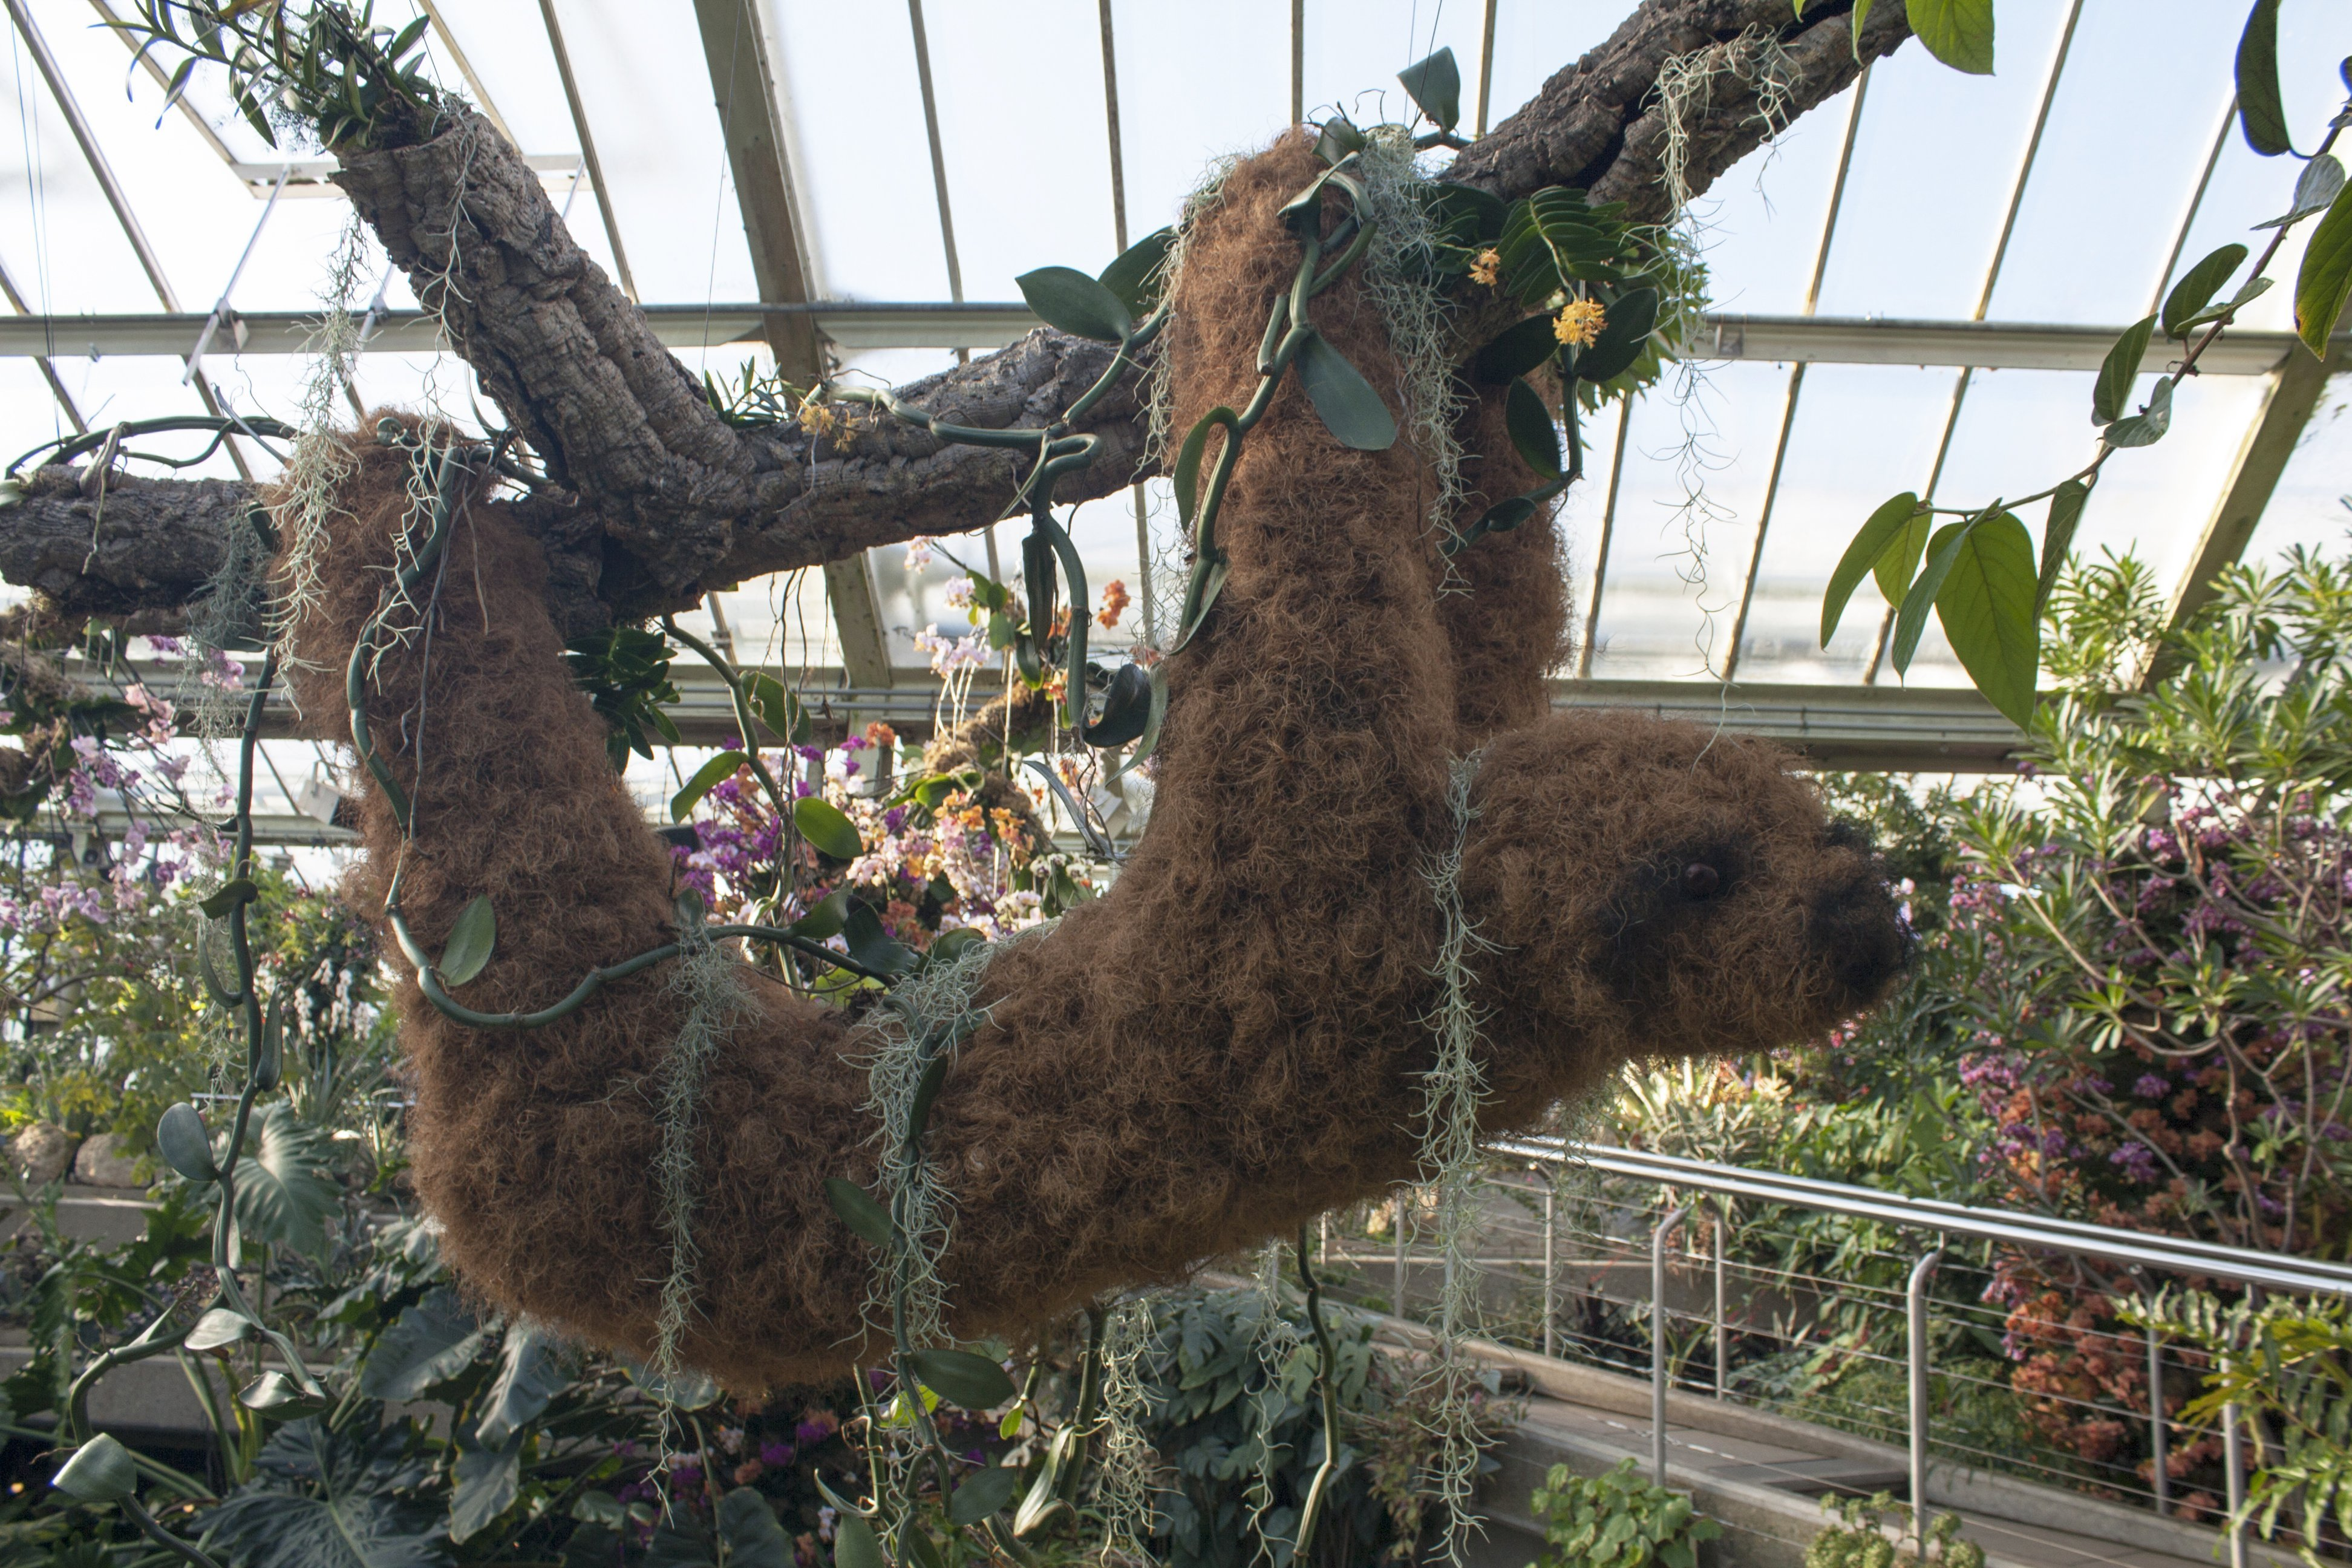 Sloth hanging at the orchid festival, Kew Gardens